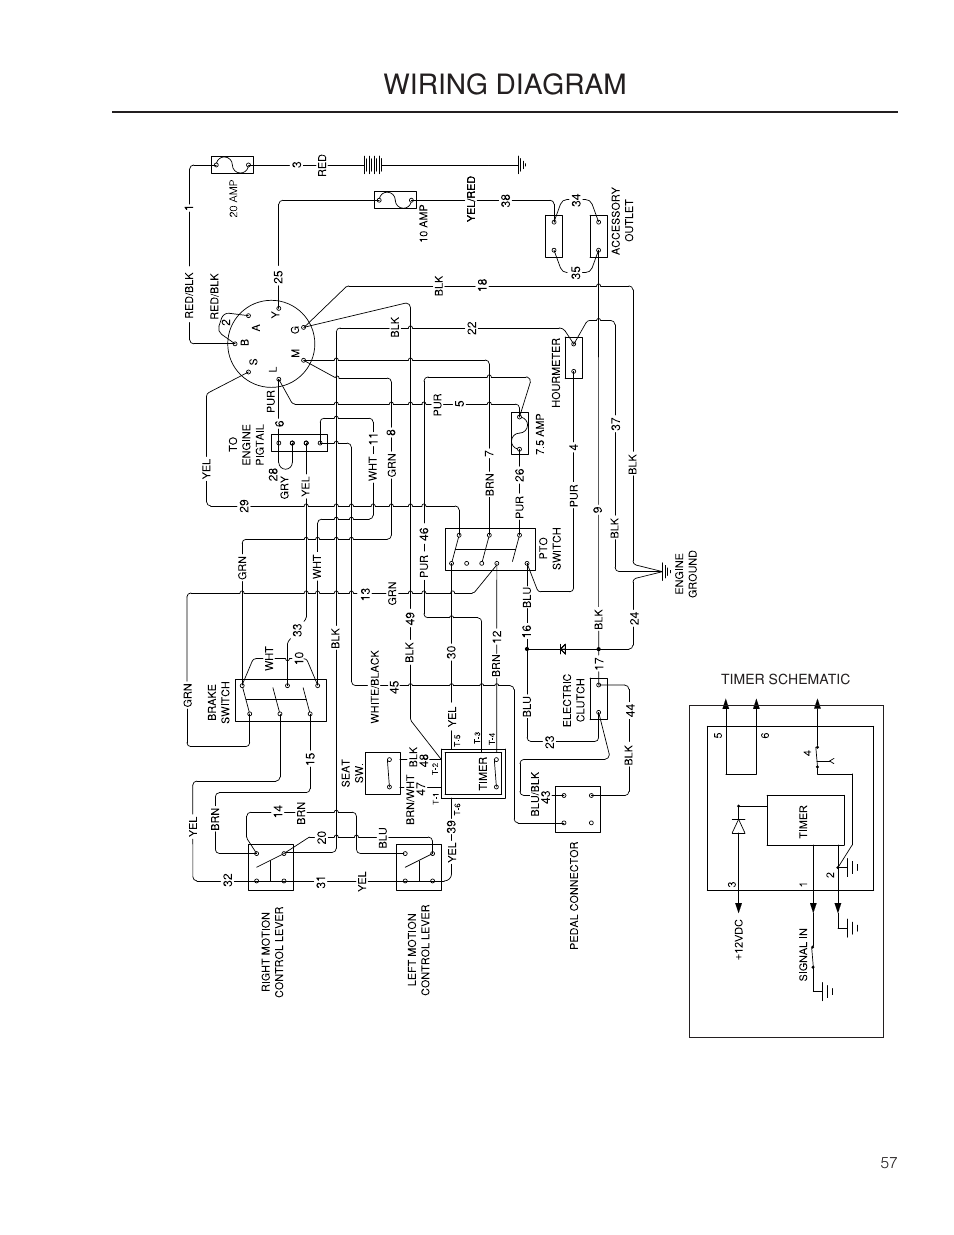 Wiring Diagrams  Wiring Diagram